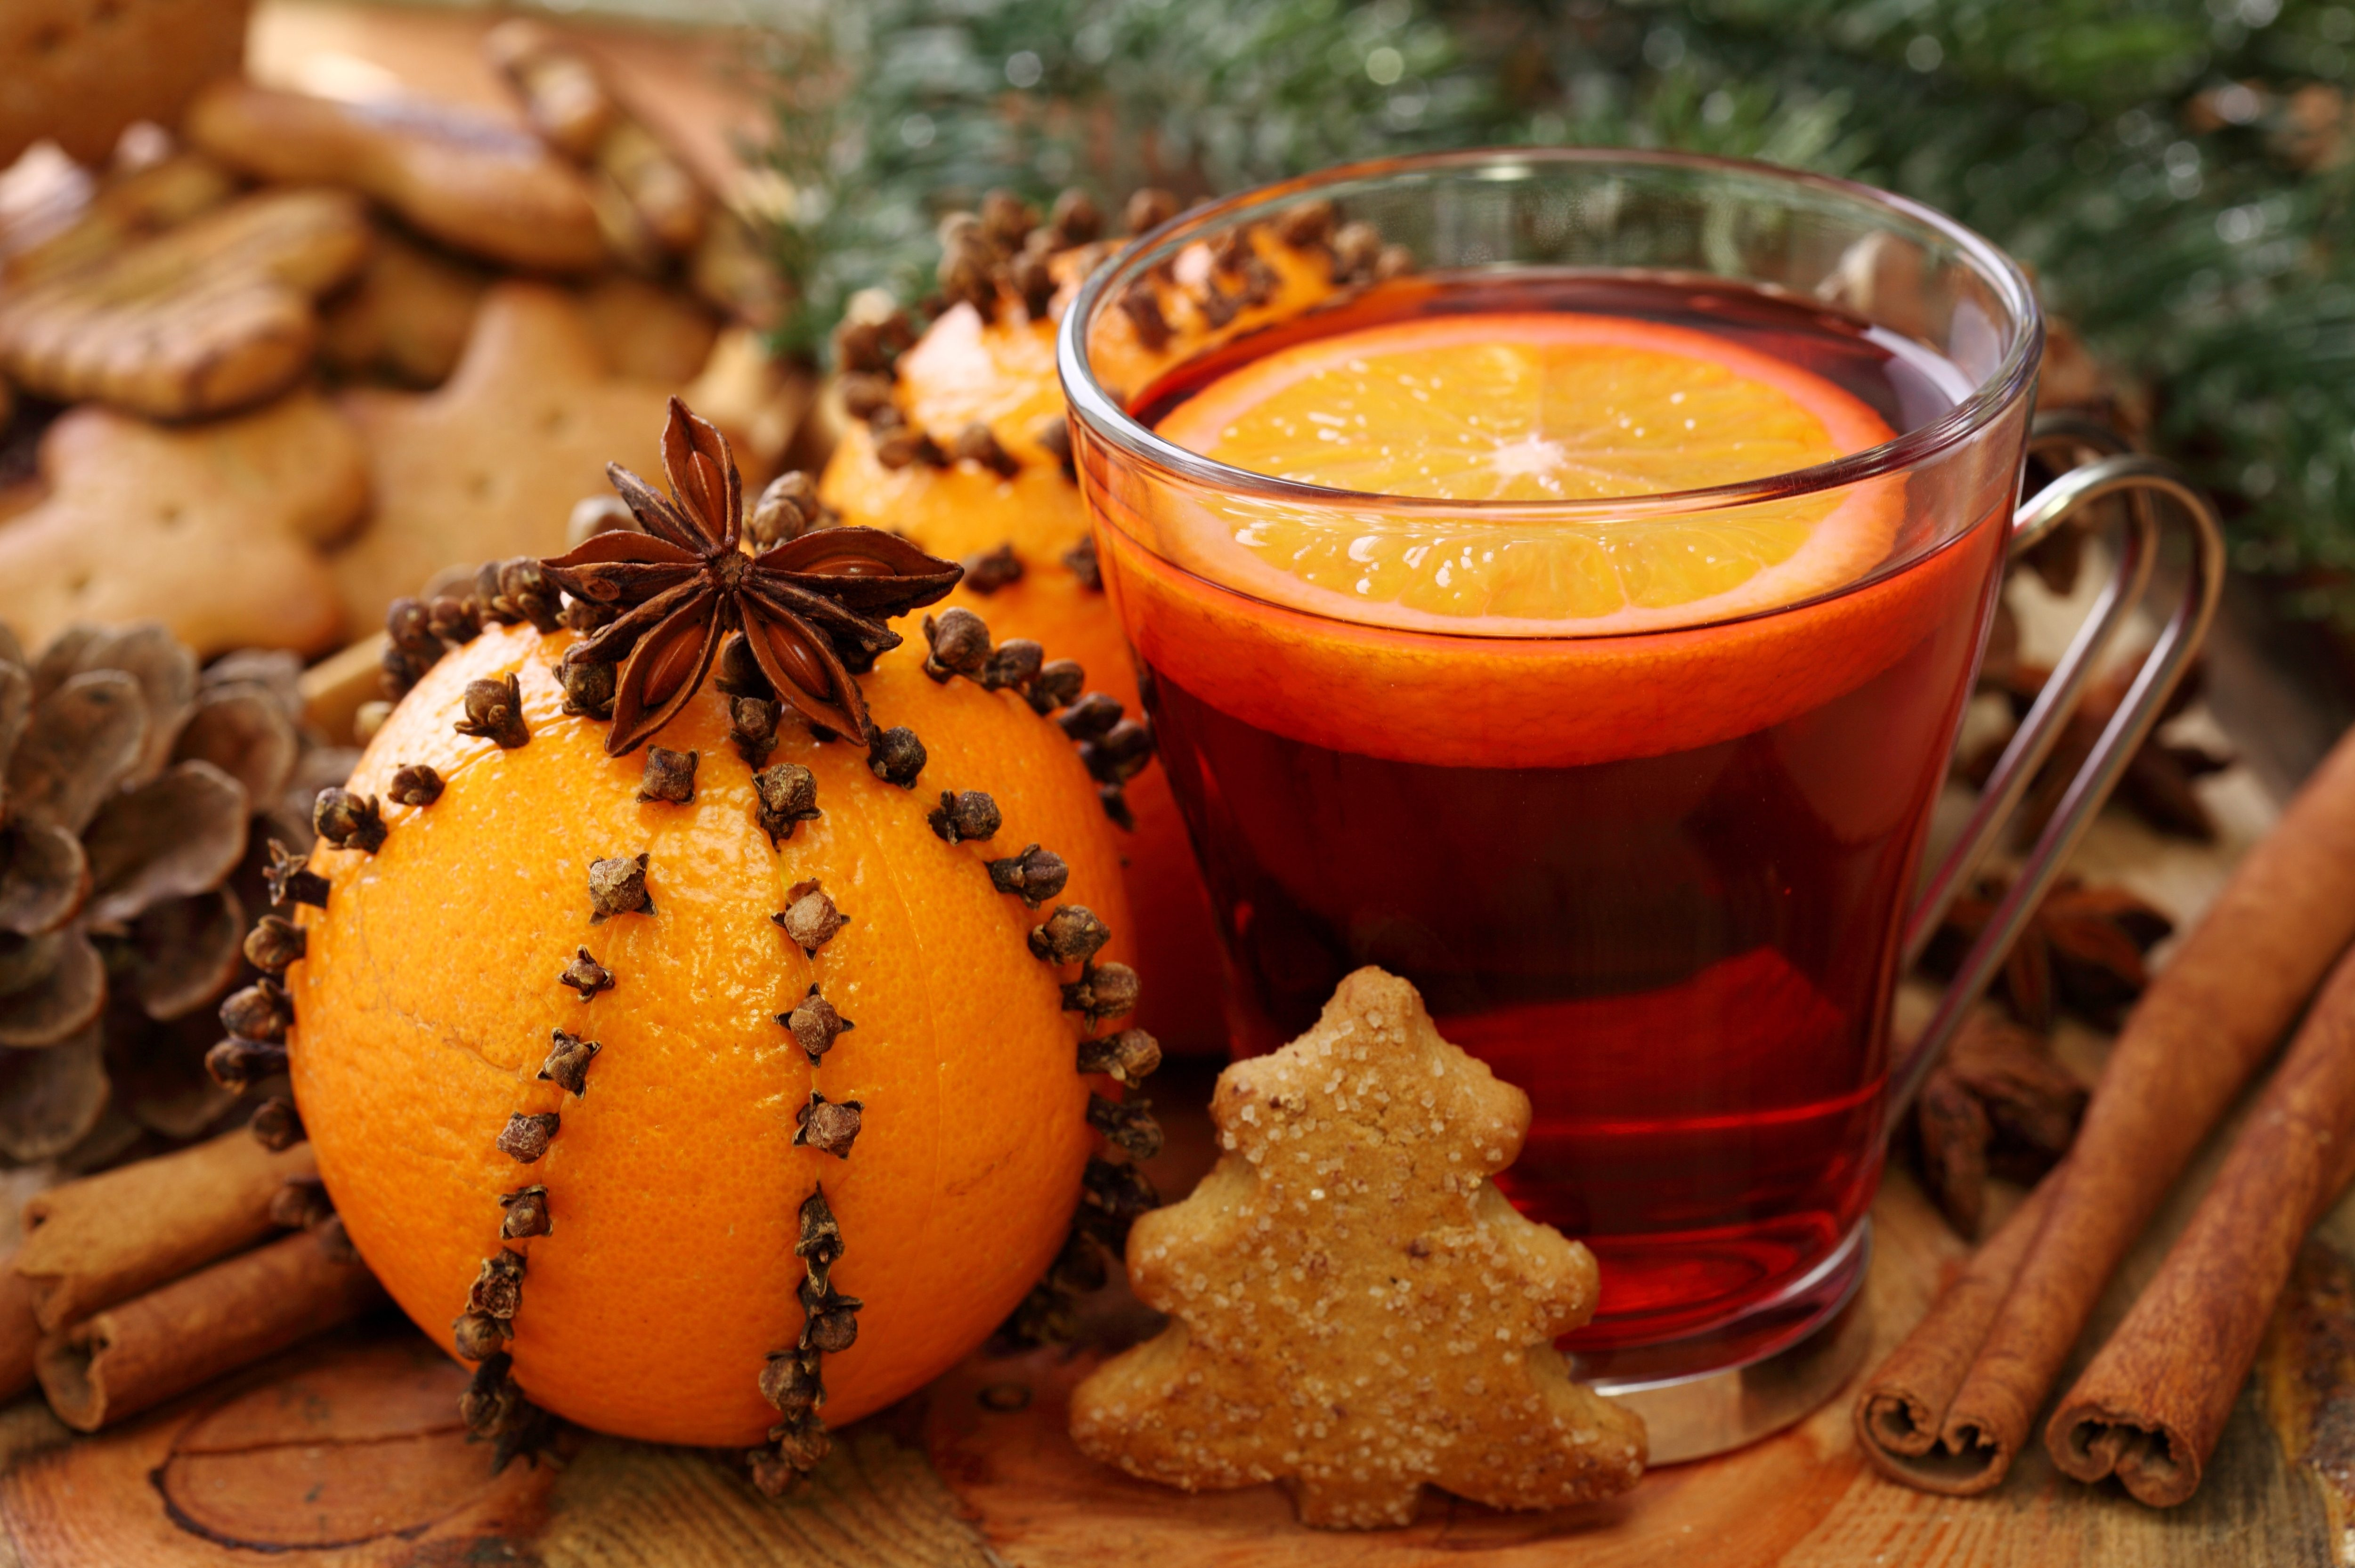 Hd photo of drink mulled wine image of orange juice for Wine and orange juice name